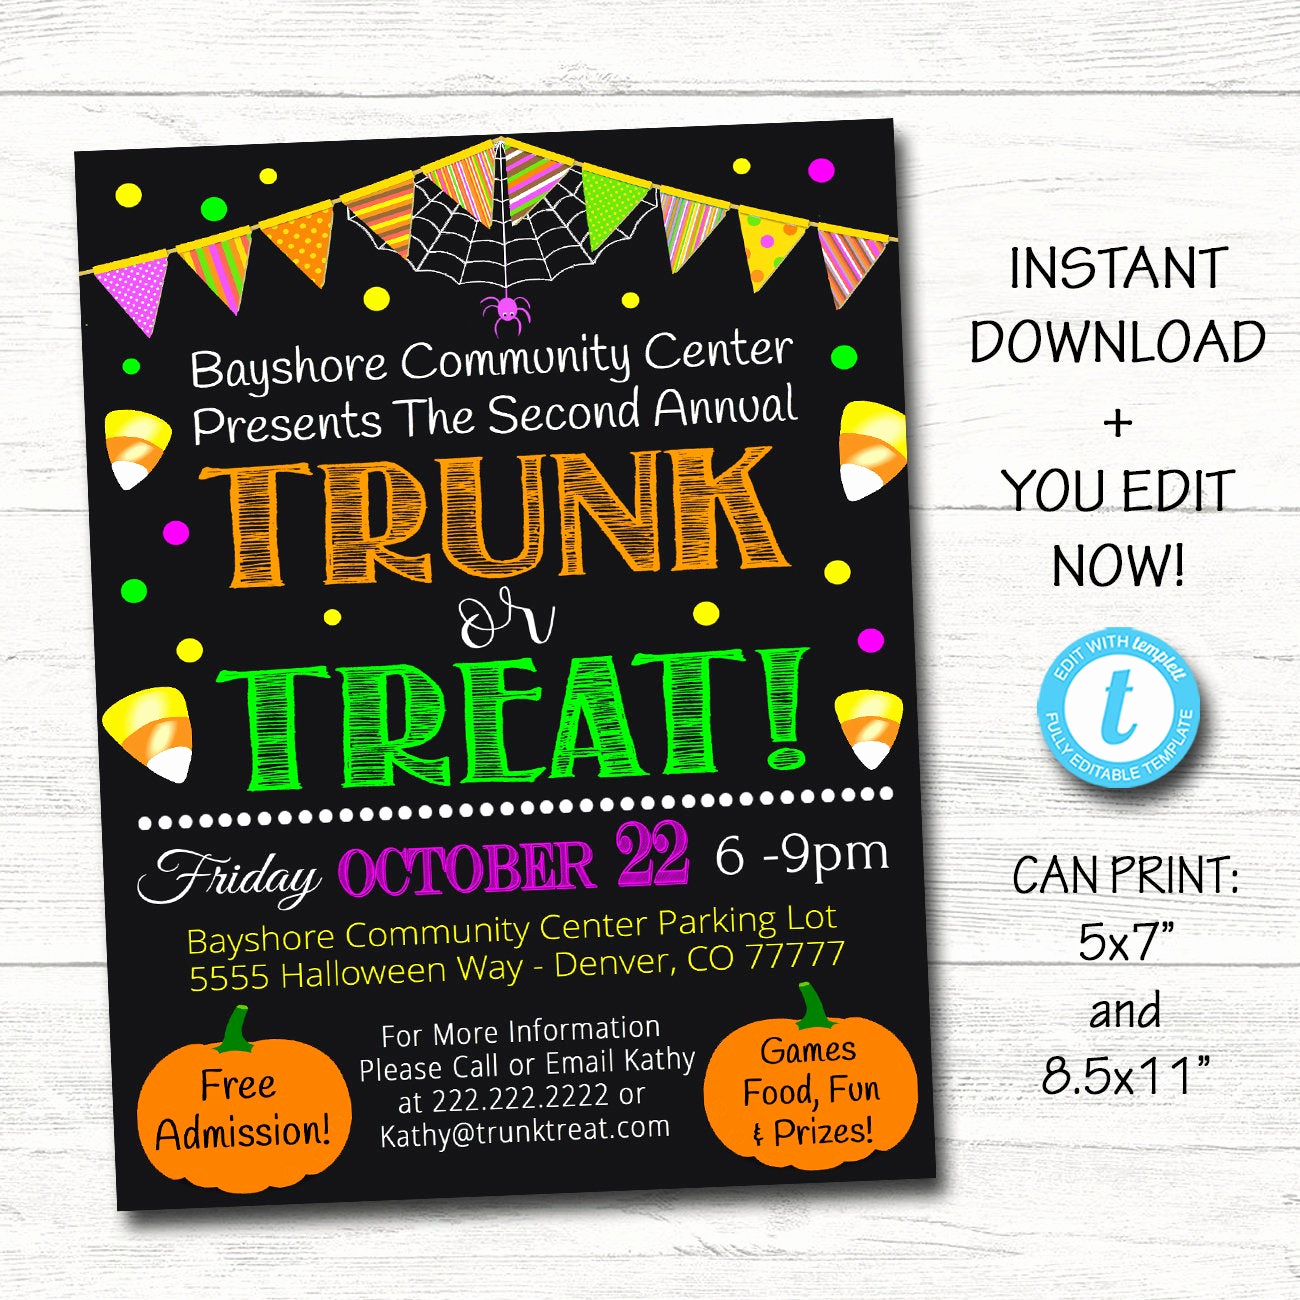 Jewelry Trunk Show Invitation Sample Lovely Editable Trunk or Treat Flyer Invitation Printable